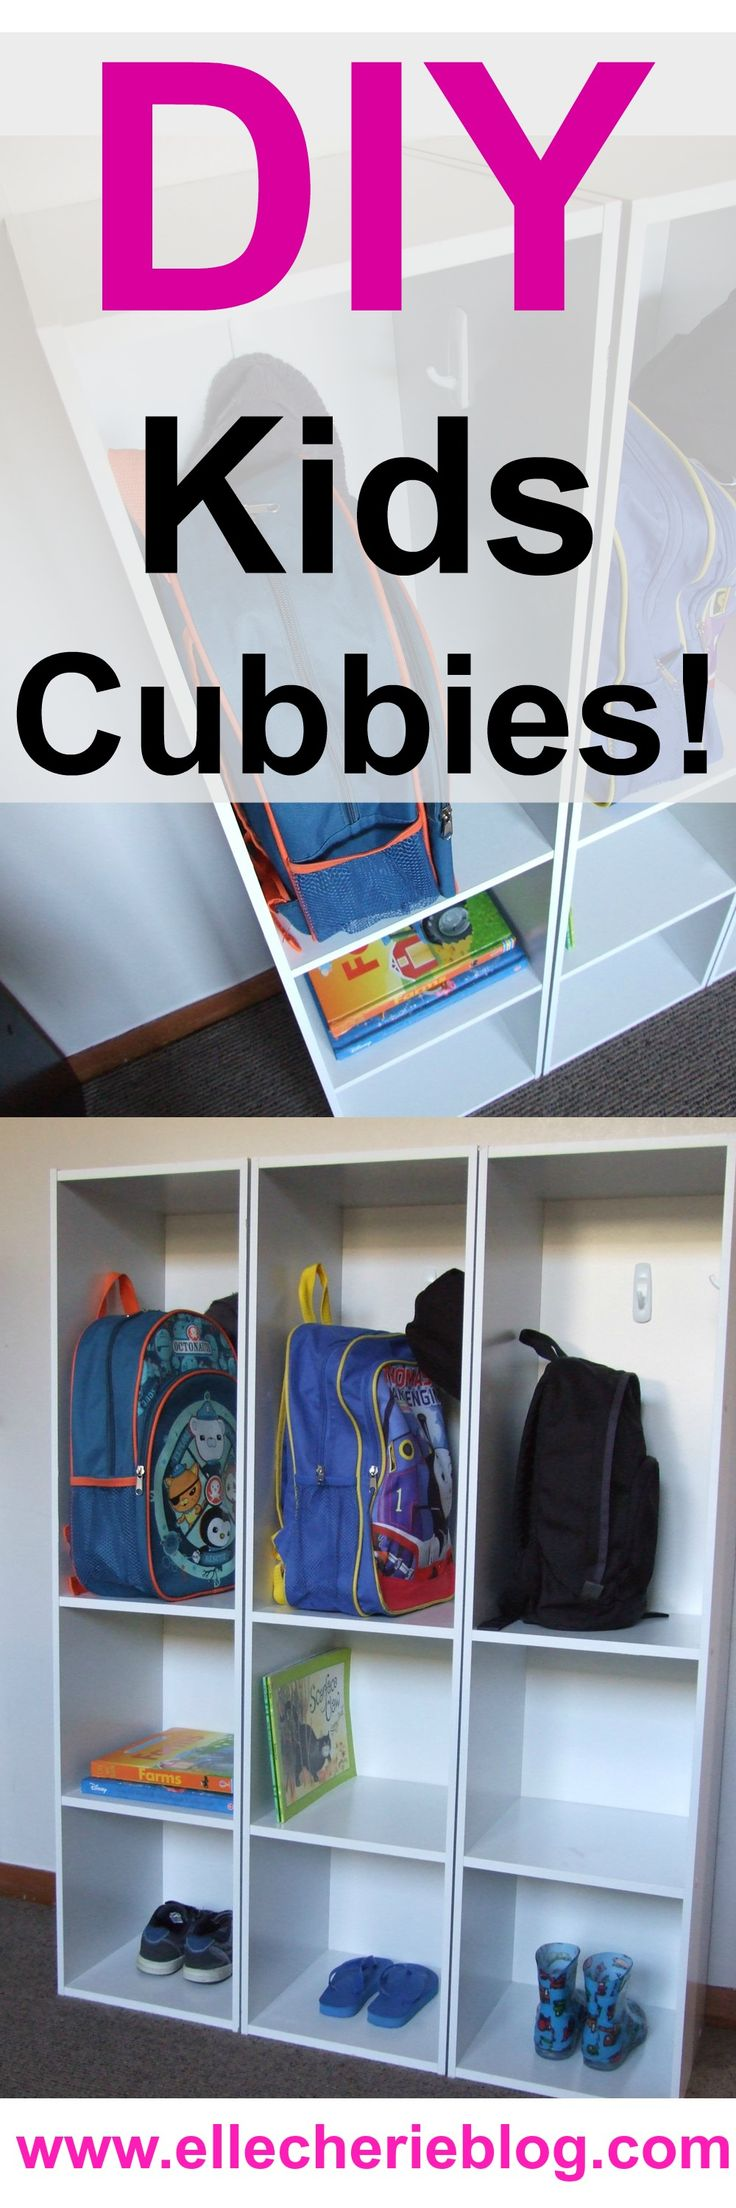 DIY Kids Cubbies. This is so simple you can do it today! Great for storing kids items and providing a place for them to put things away.  Click to see more/ Pin to see later - Visit www.ellecherieblog.com